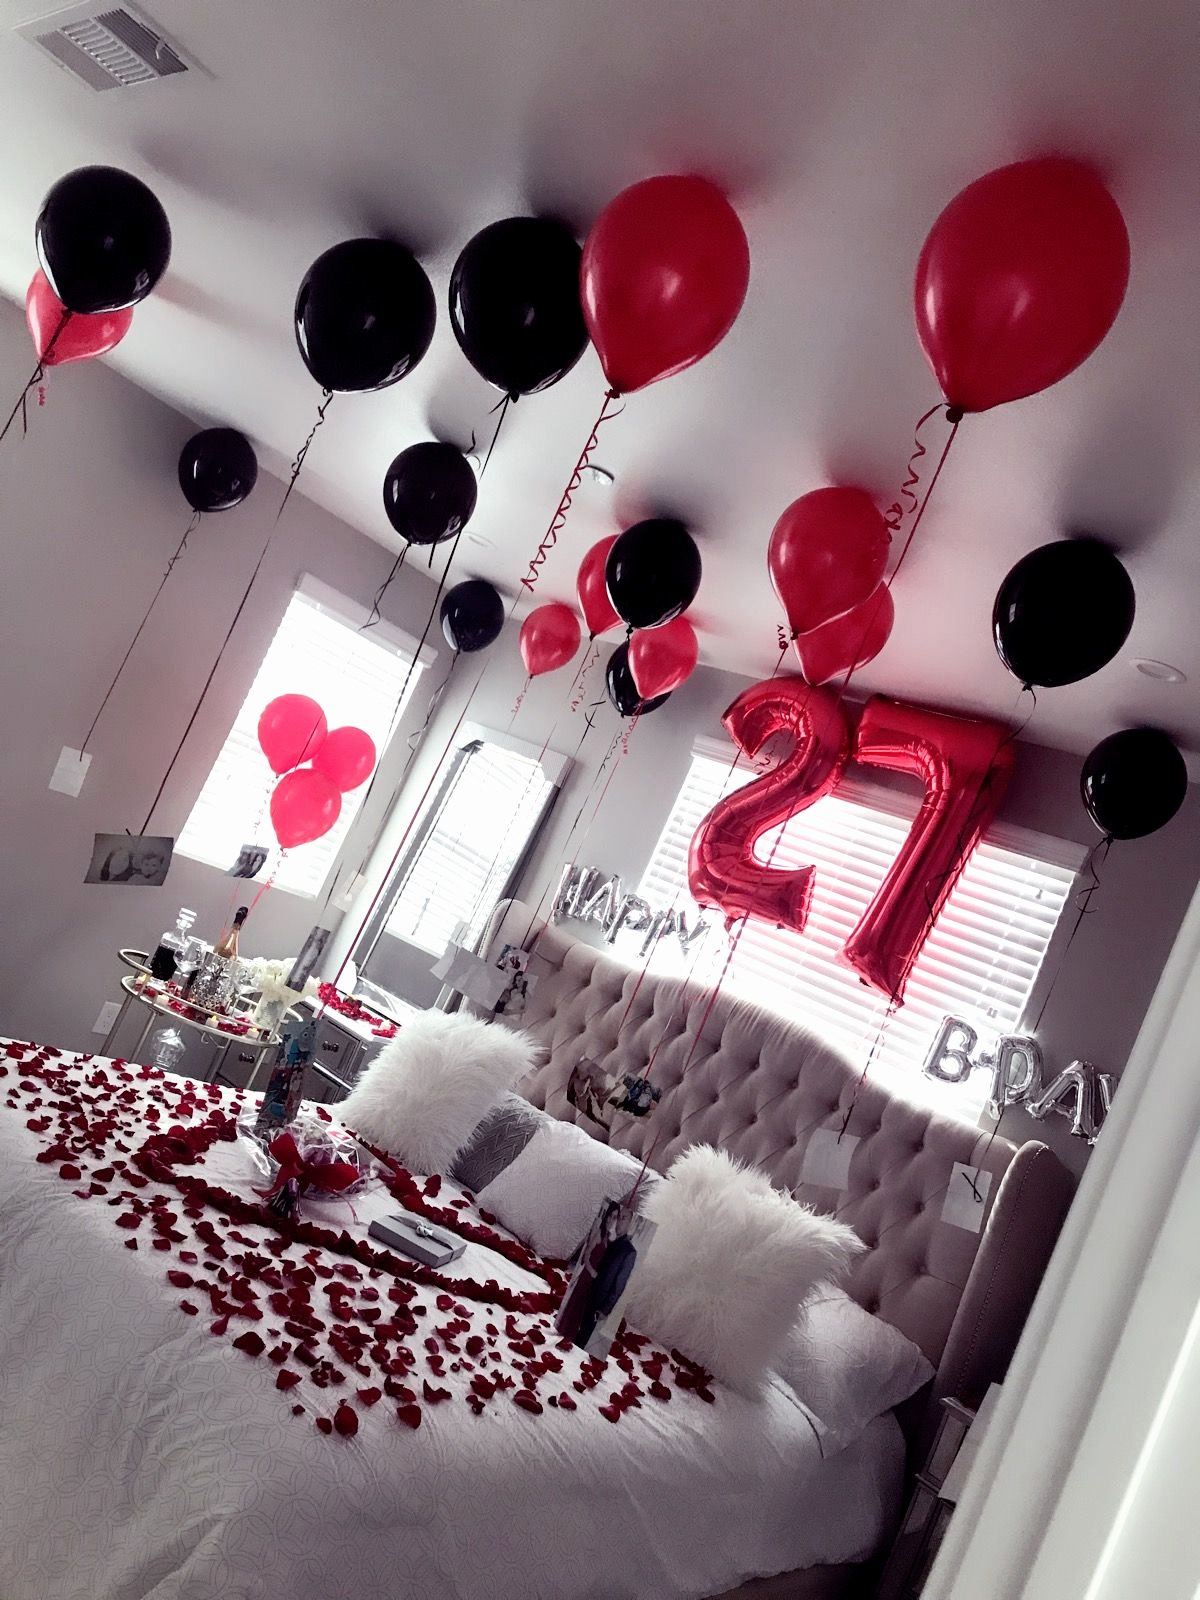 Surprise Birthday Decoration Ideas for Husband Unique Birthday Surprise for Wife Husband